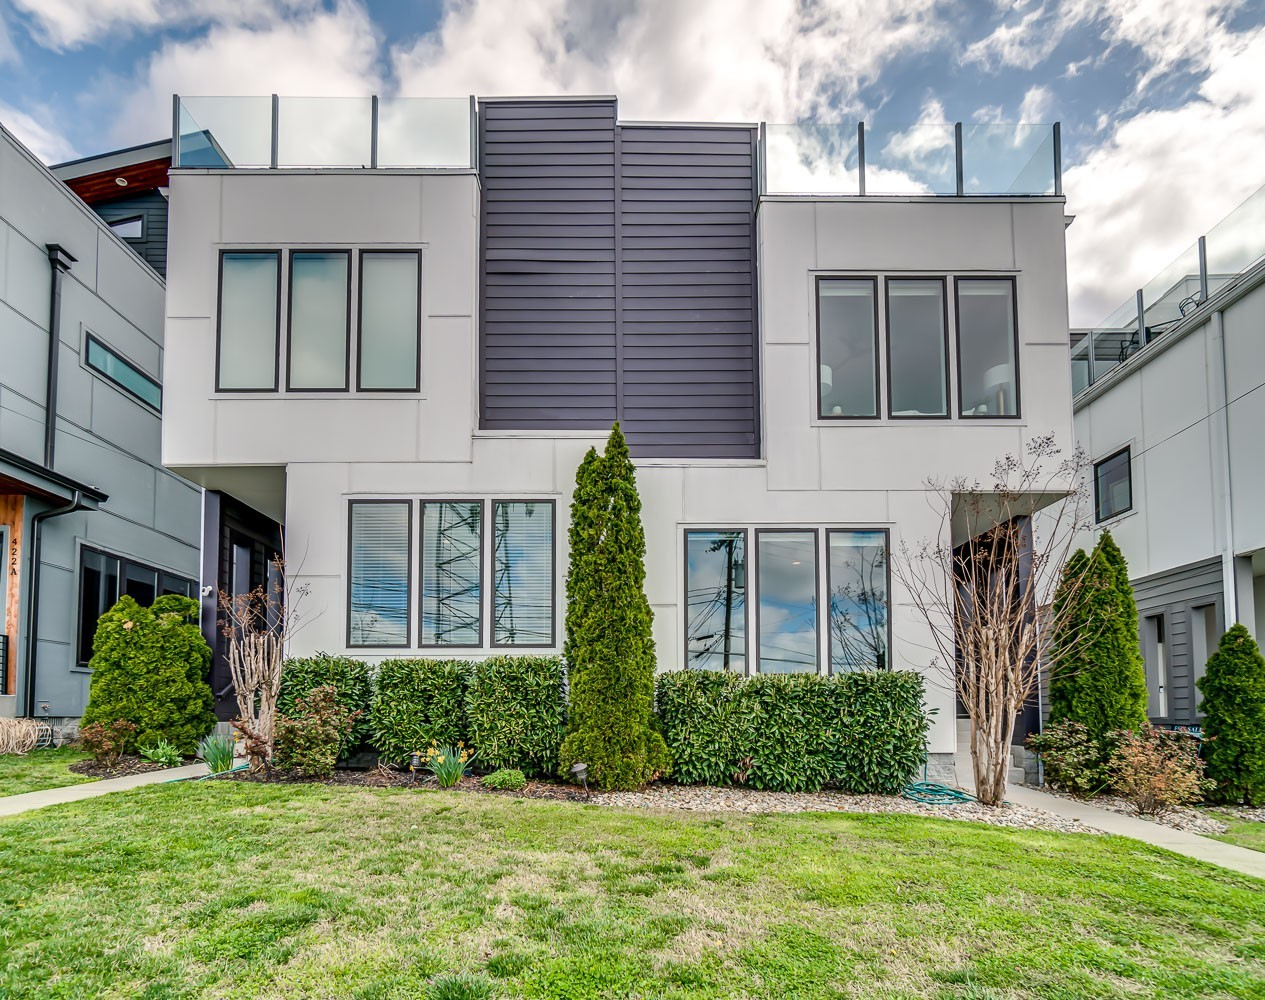 Modern Living in Sylvan Summit - West Nashville, just minutes to downtown Nashville, stainless appliances, quartz countertops, hardwoods throughout, two story screened porch, two rooftop decks, fenced back yard, beautiful views of West Nashville to enjoy all of the evening sunsets.